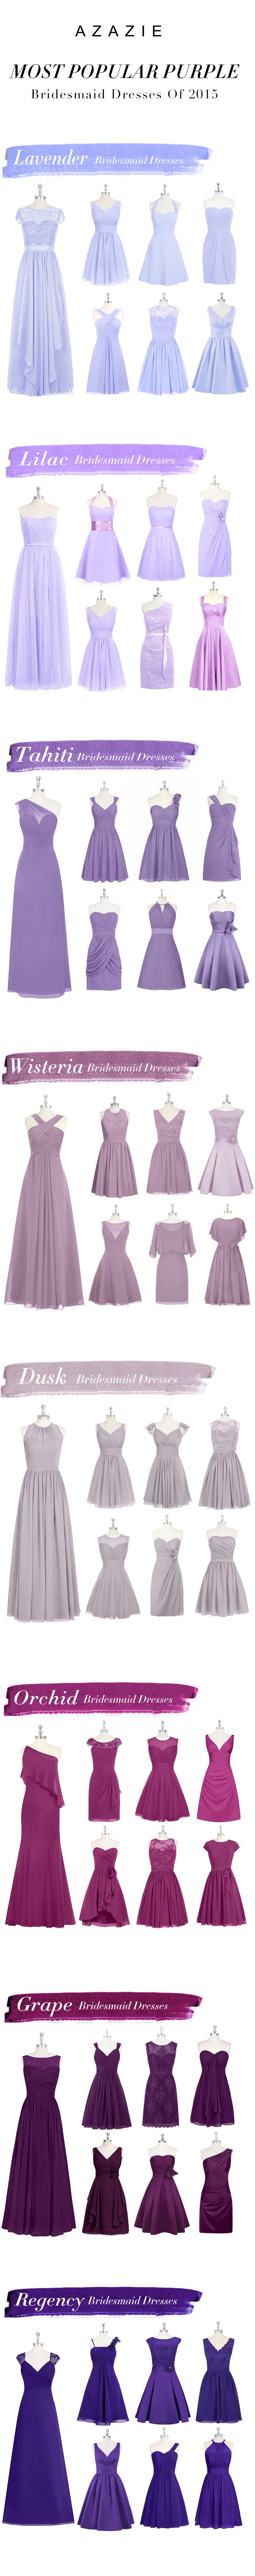 Most Popular Purple Bridesmaid Dresses By Azazie. Shop our picks!